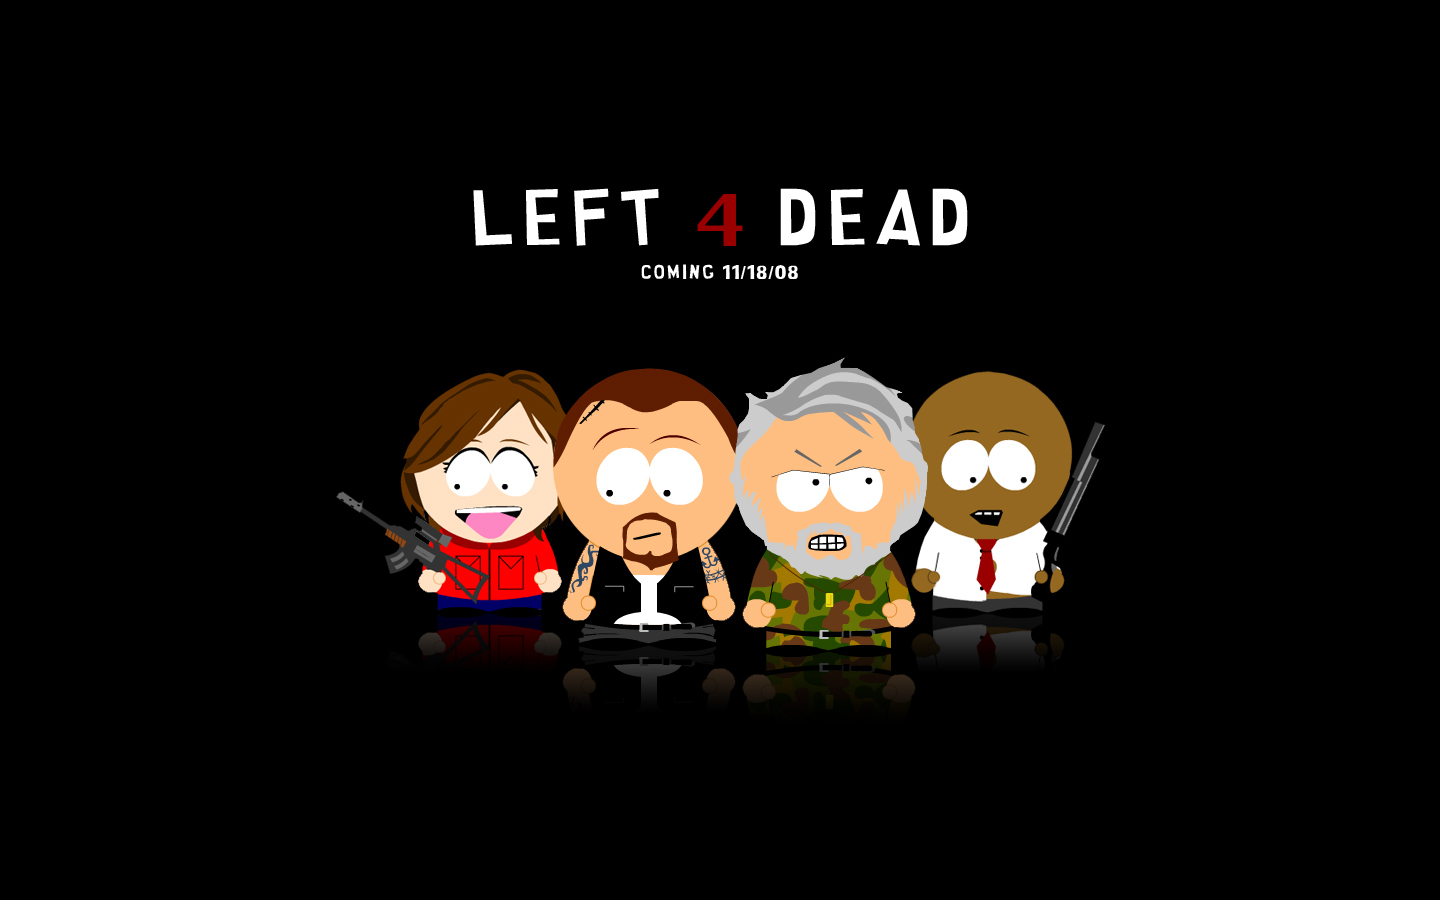 Left 4 Dead characters(South park animated version)